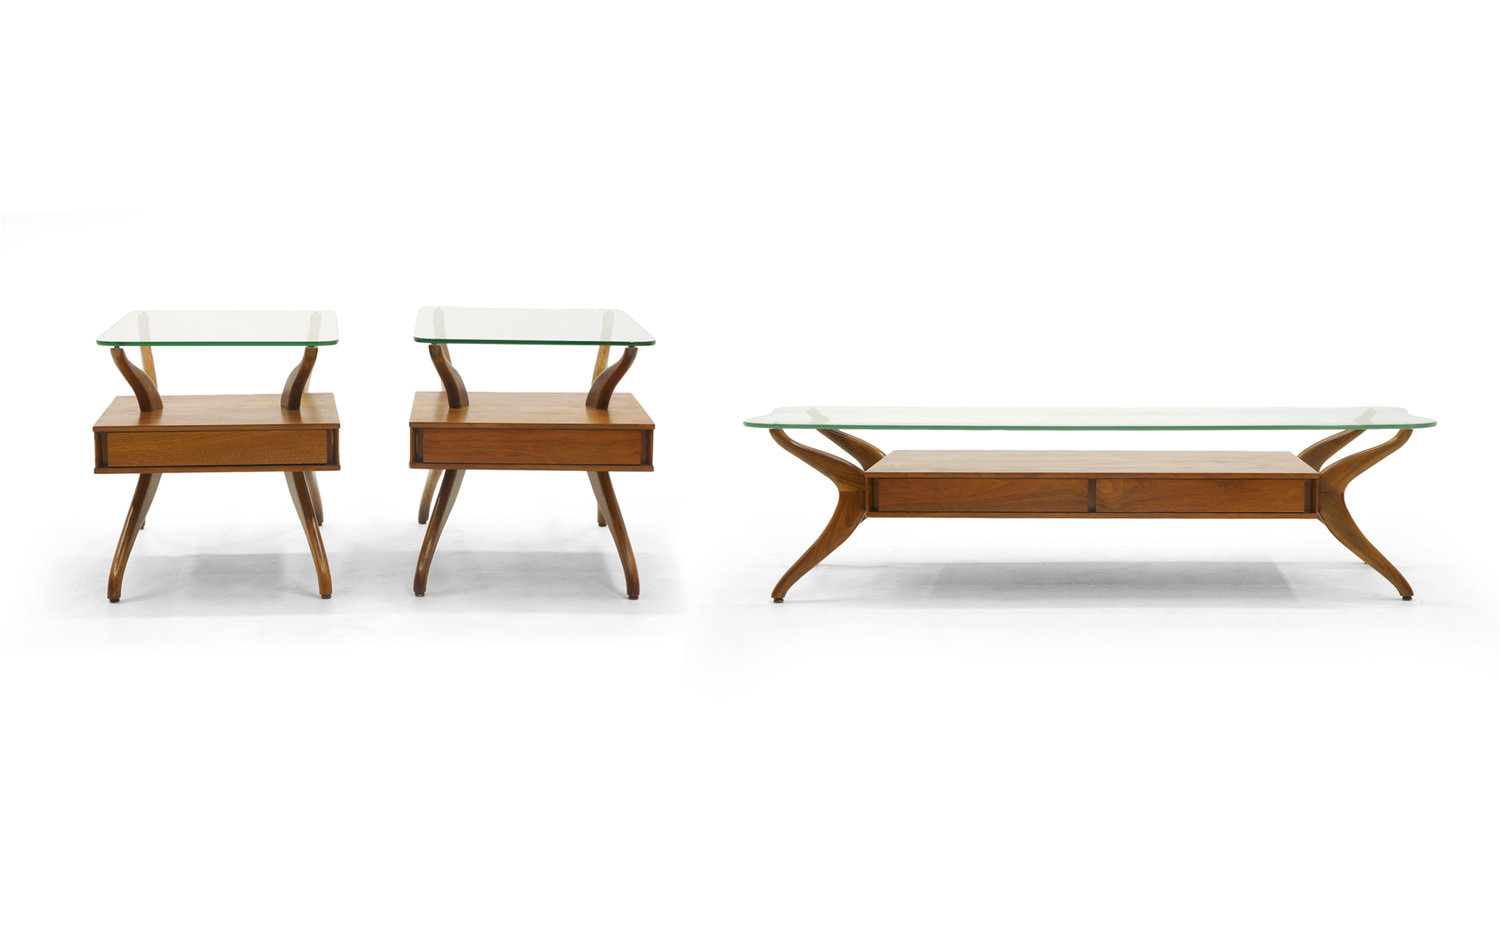 Kagan Coffee Table.Sculptural Coffee Table And Two End Tables In The Style Of Vladimir Kagan Retro Inferno